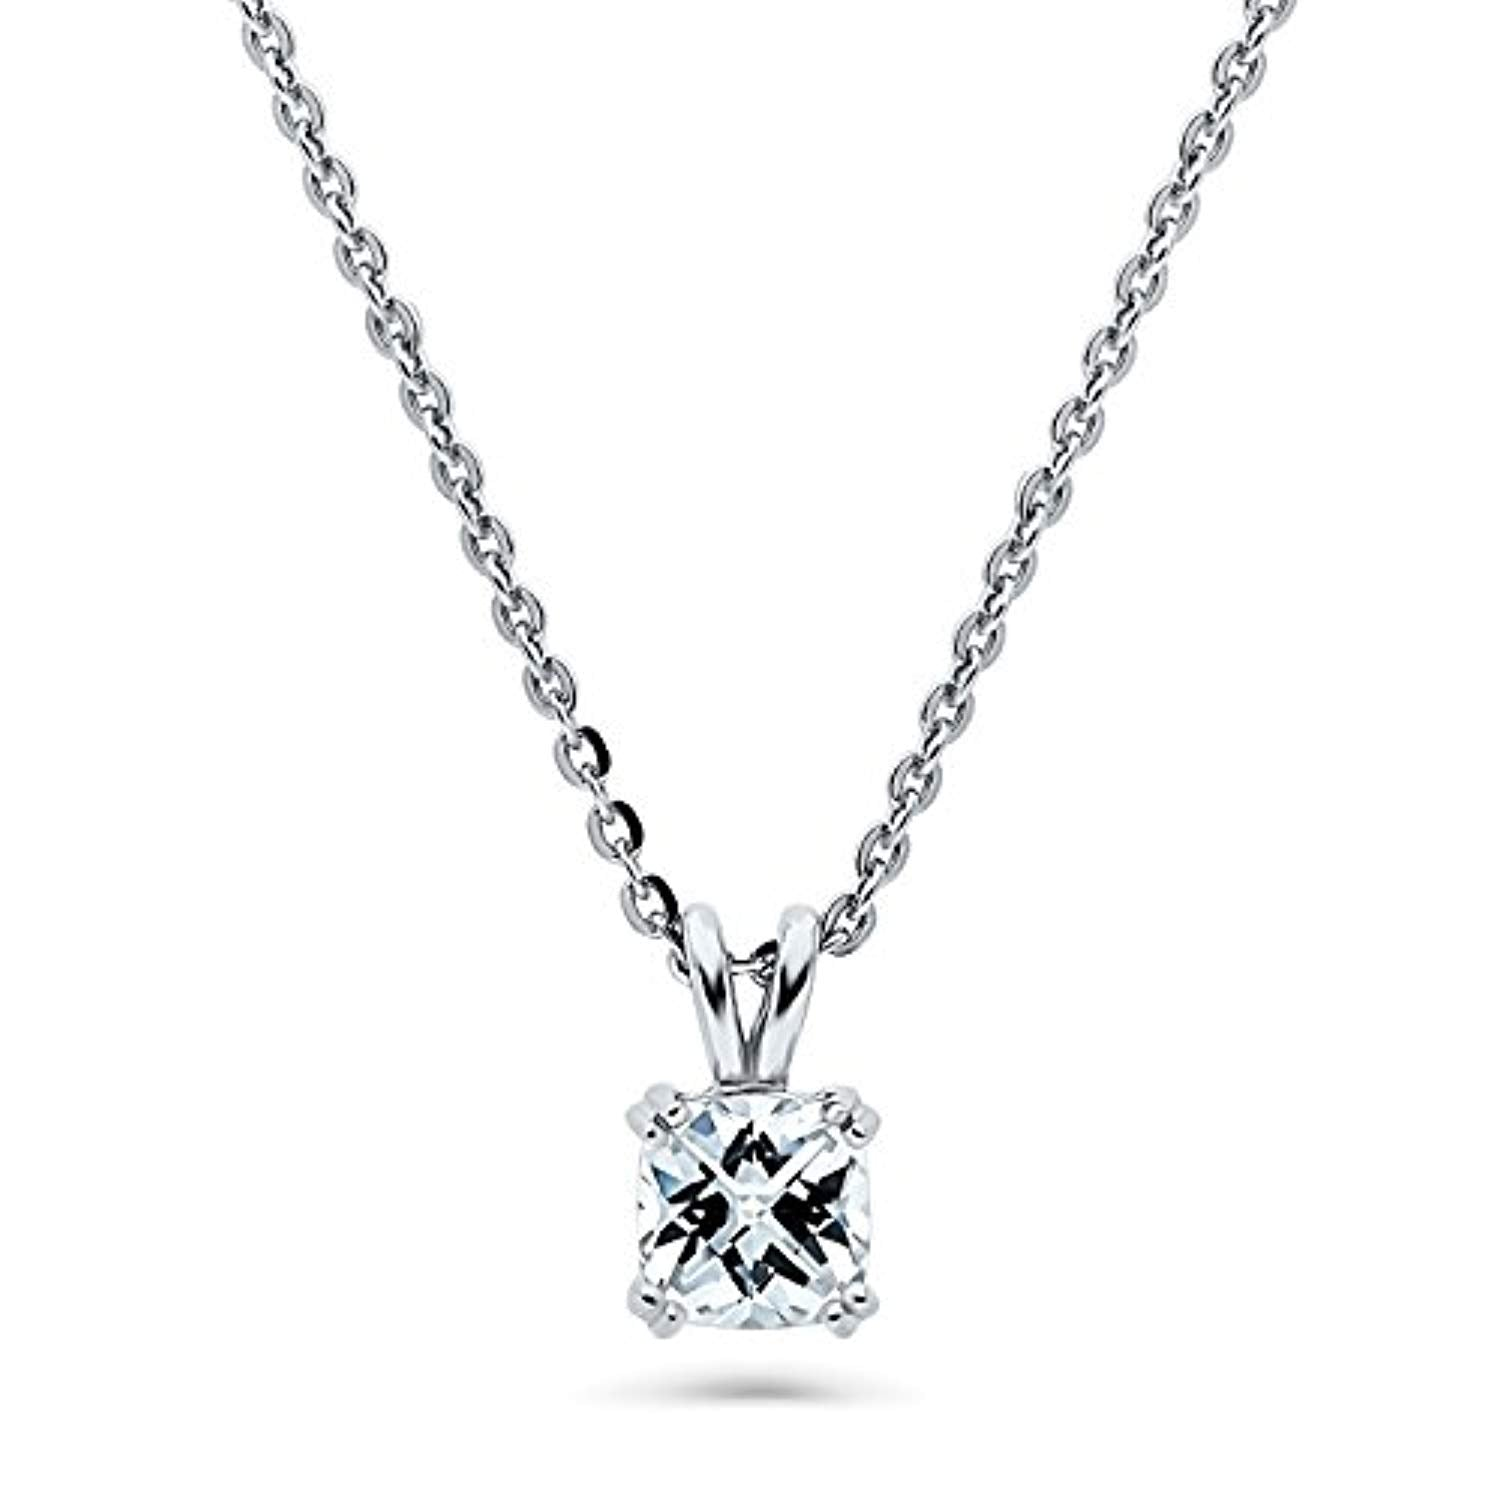 Rhodium Plated Sterling Silver Solitaire Anniversary Wedding Pendant Necklace Made with Swarovski Zirconia Checkerboard Cushion Cut